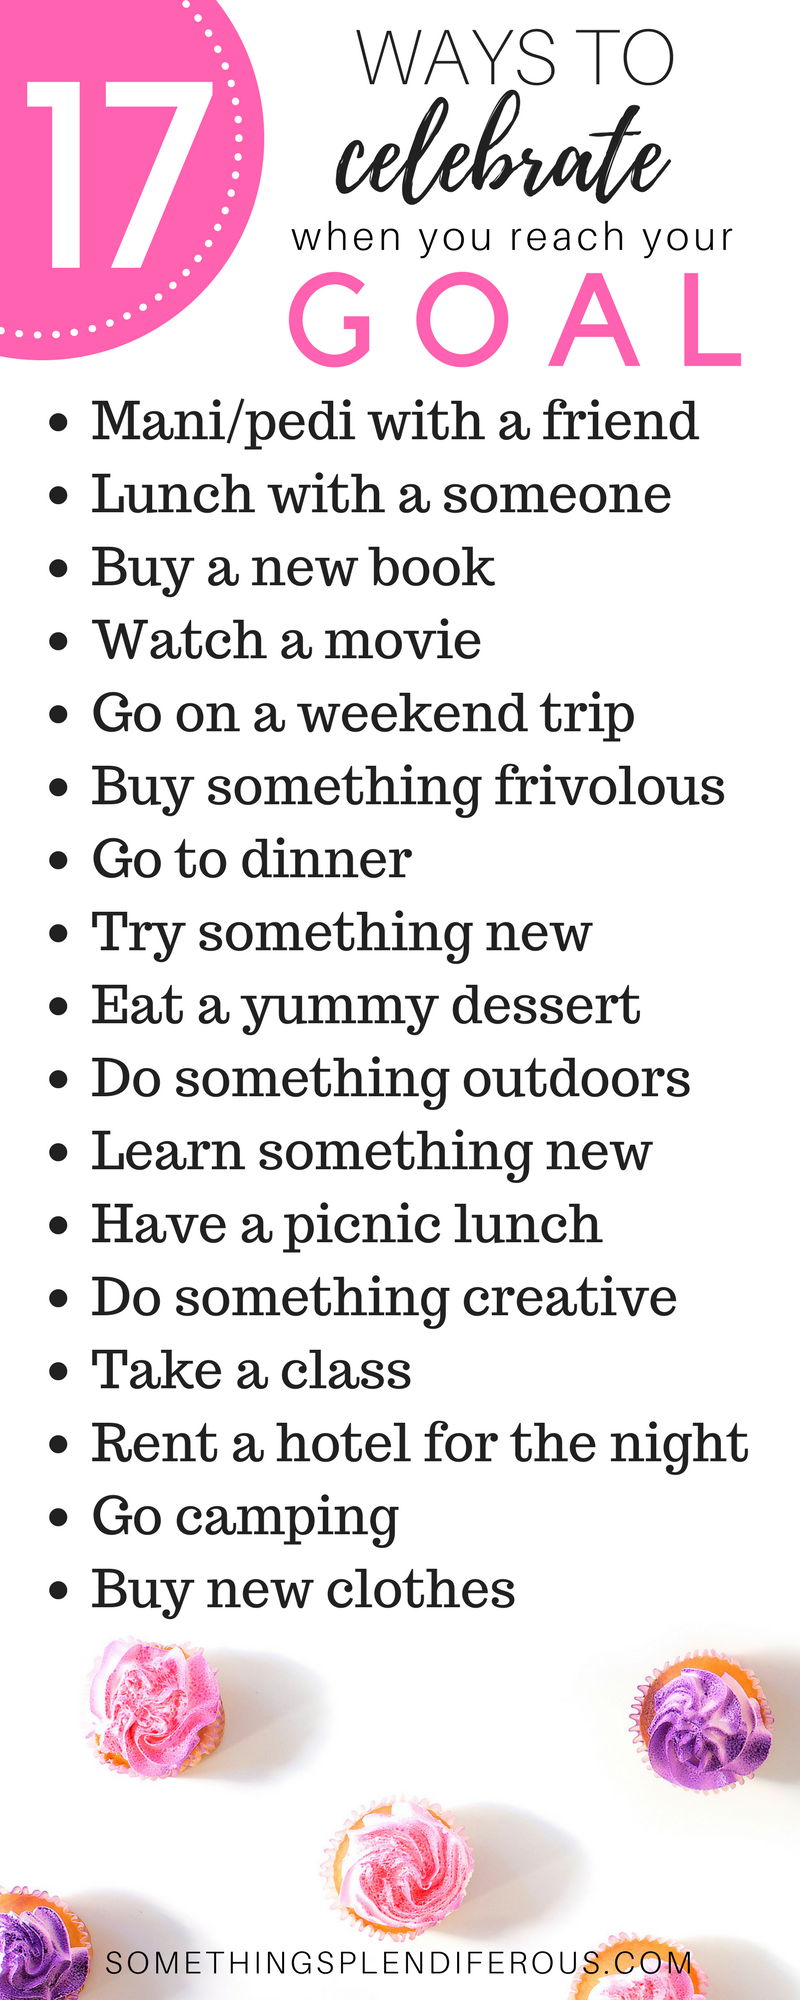 resolution 17 ways to Celebrate When you accomplish your goal you need to spend some time treating yourself! www.somethingsplendiferous.com